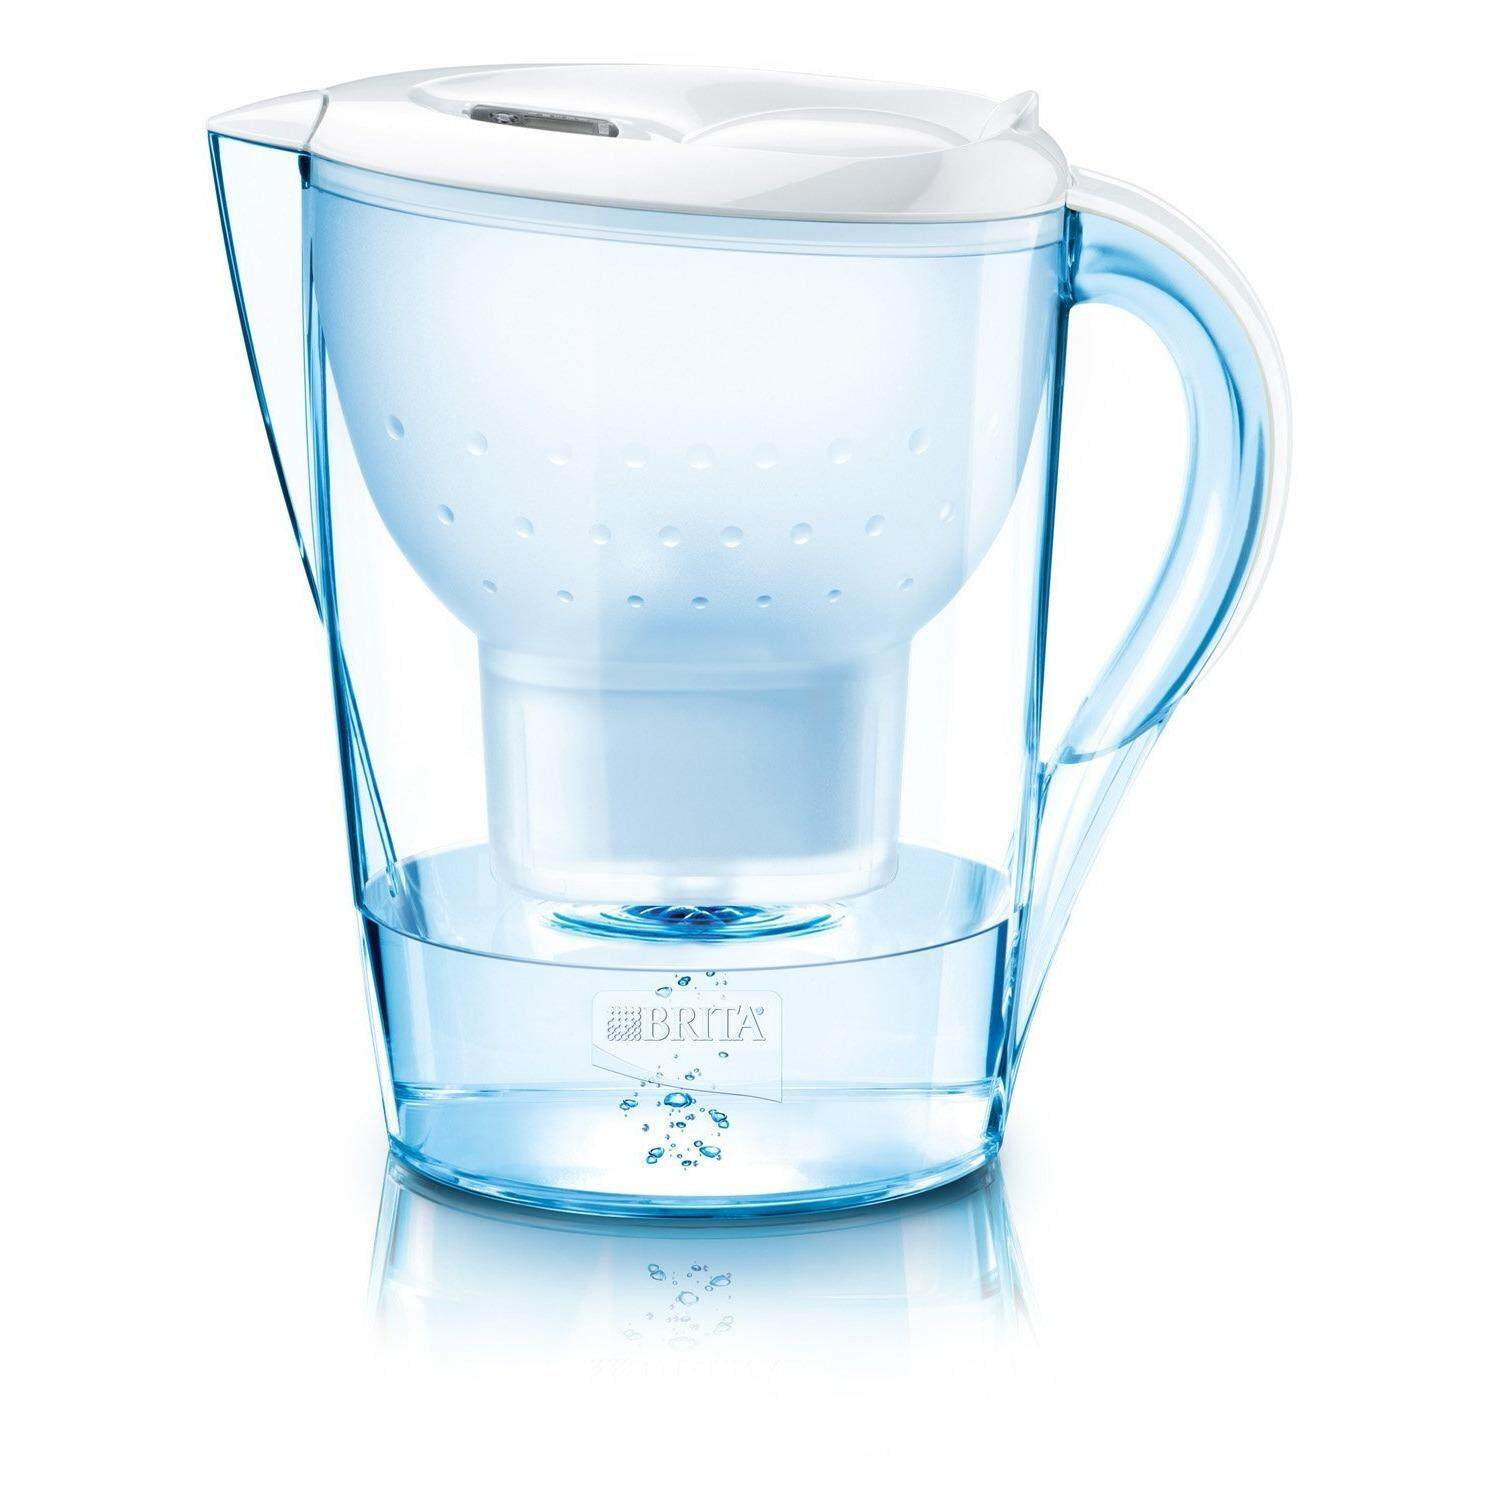 BRITA Marella XL Water Filter Jug, 3.5 L - White